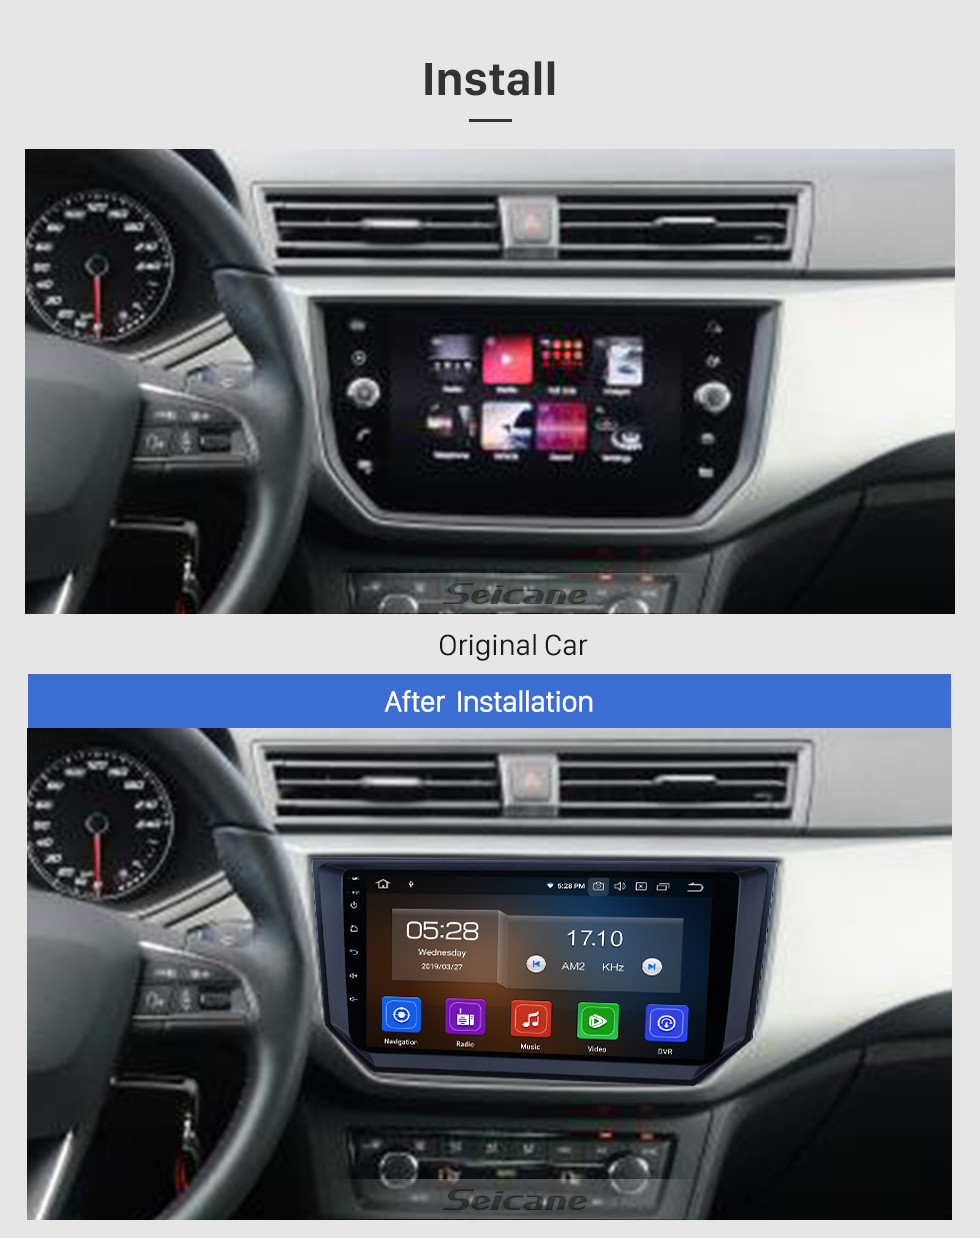 Seicane Écran tactile HD 2018 Seat Ibiza Android 9.0 9 pouces GPS Navigation Radio Bluetooth USB WIFI Support Carplay DAB + TPMS OBD2